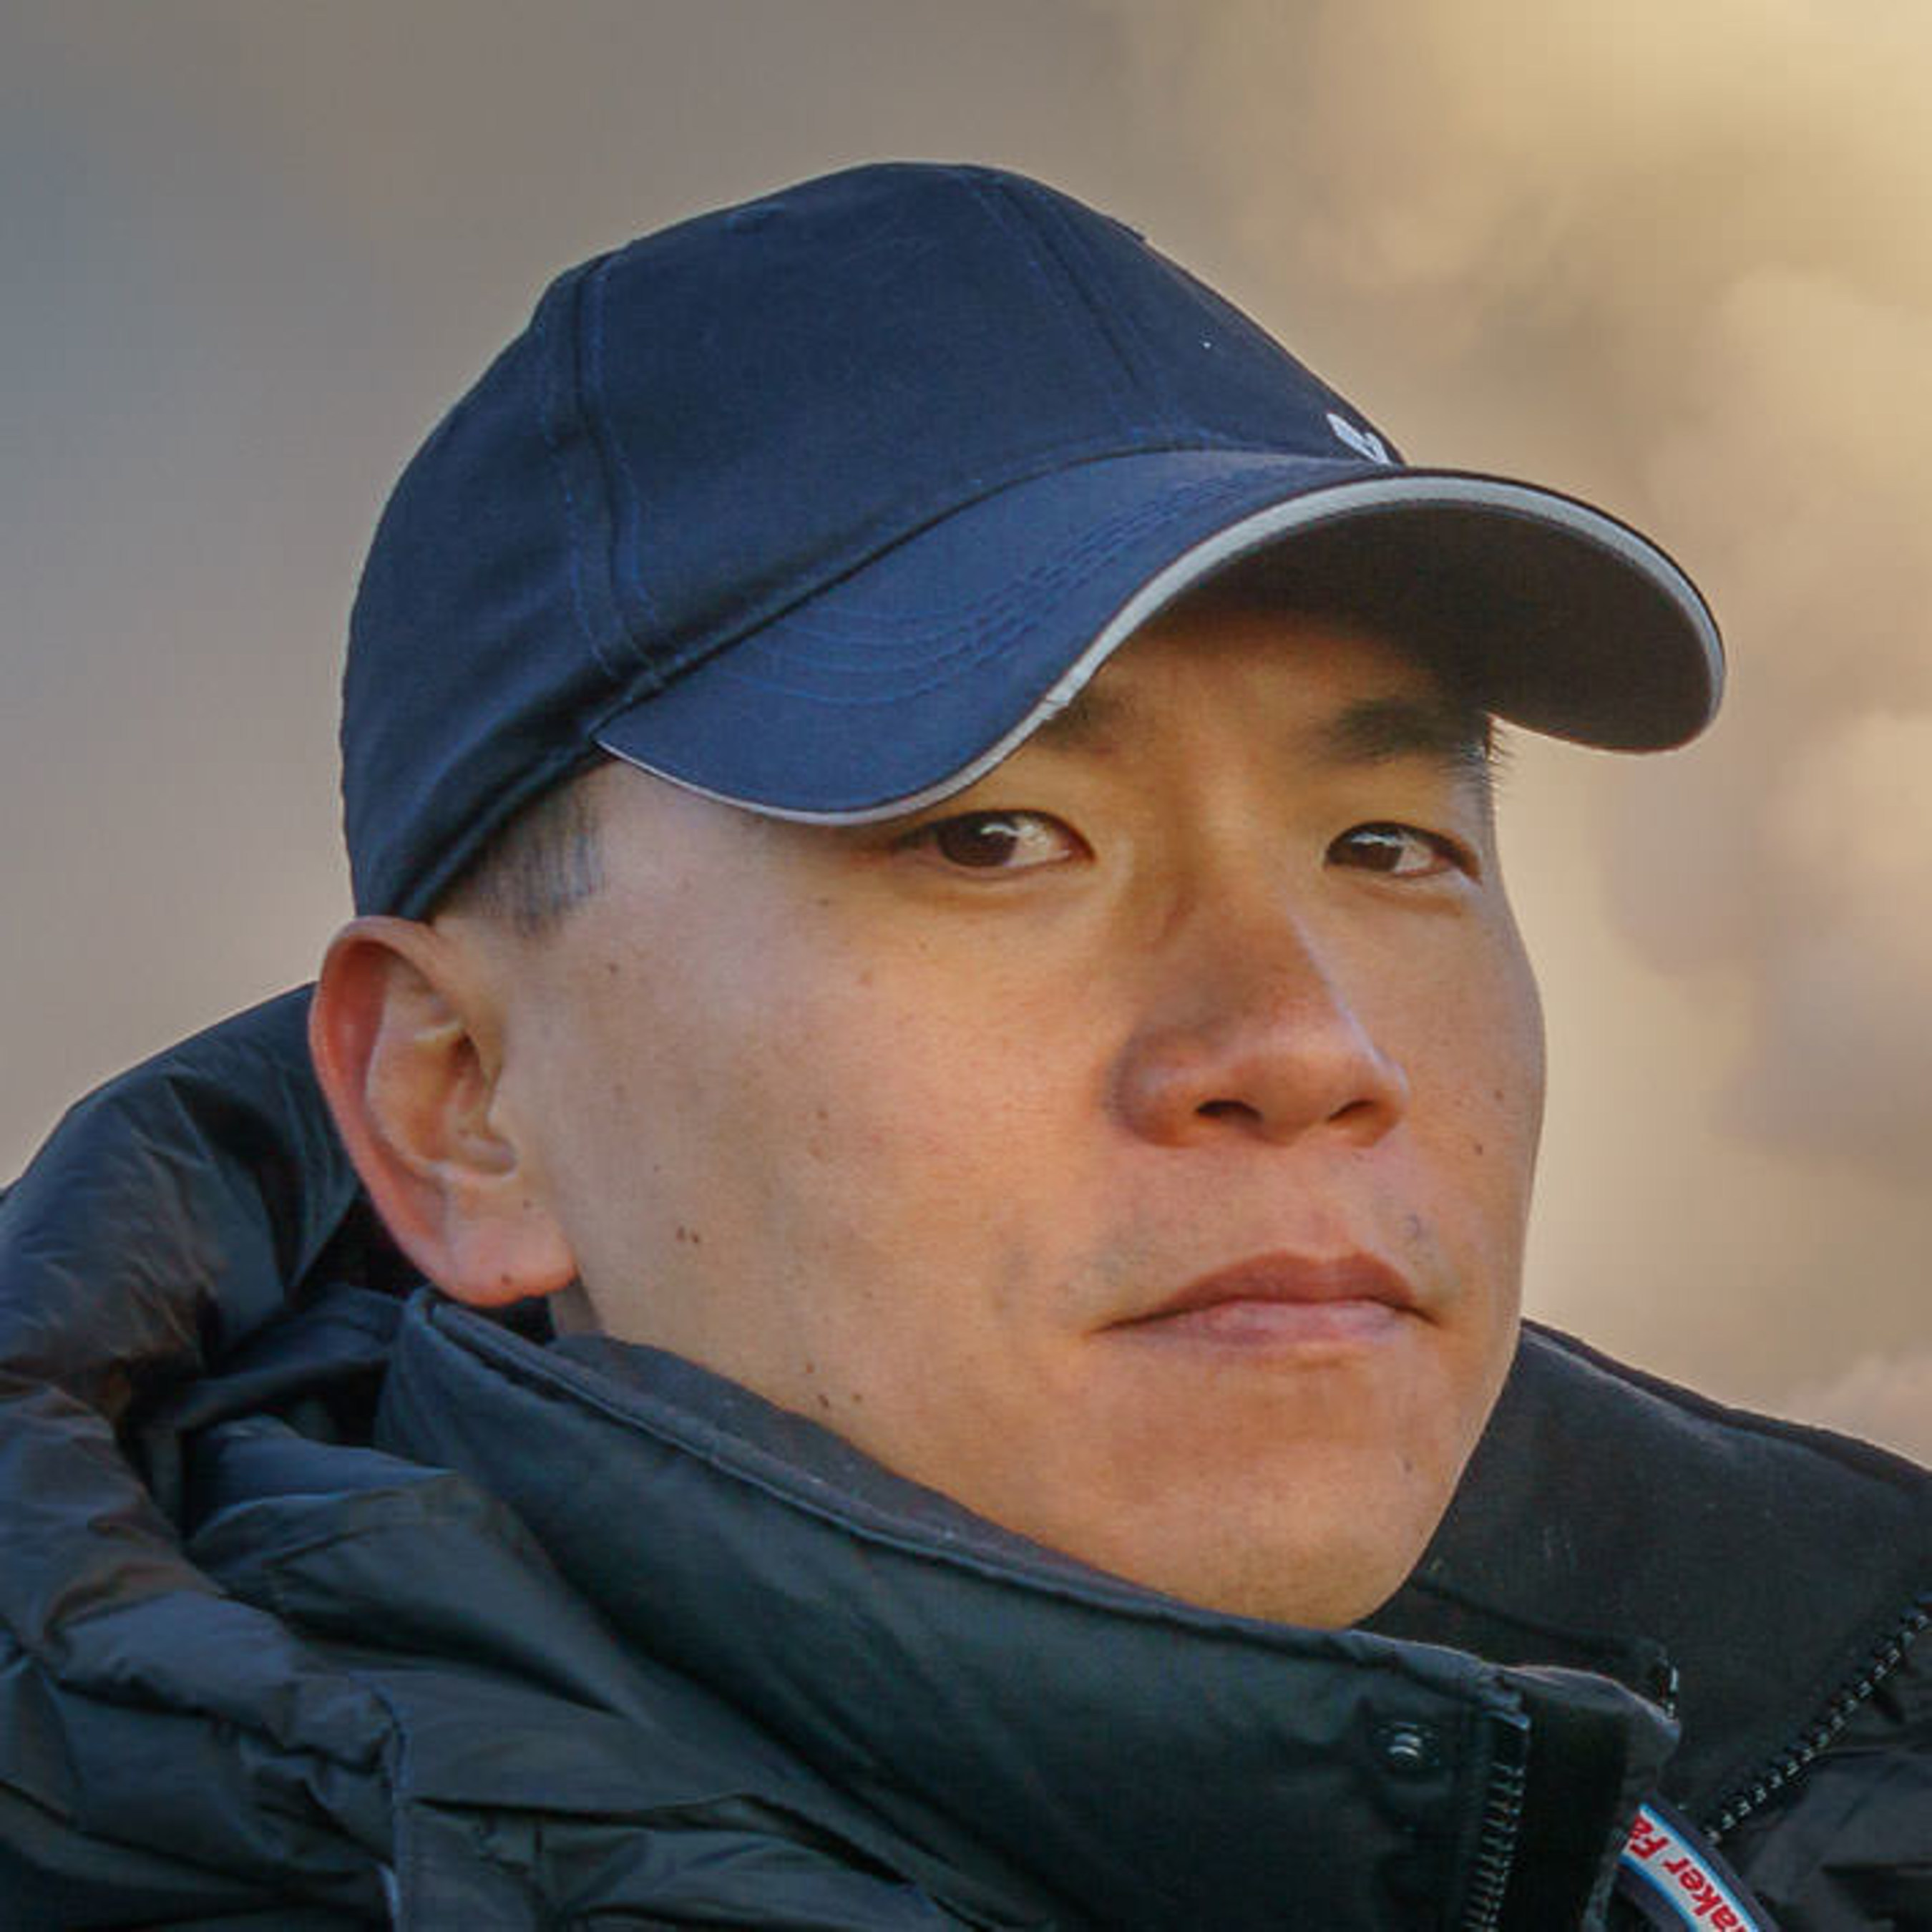 Facebook Head of Immersive Media Eric Cheng to share insights on the VR revolution at Mobile Photo Connect conference